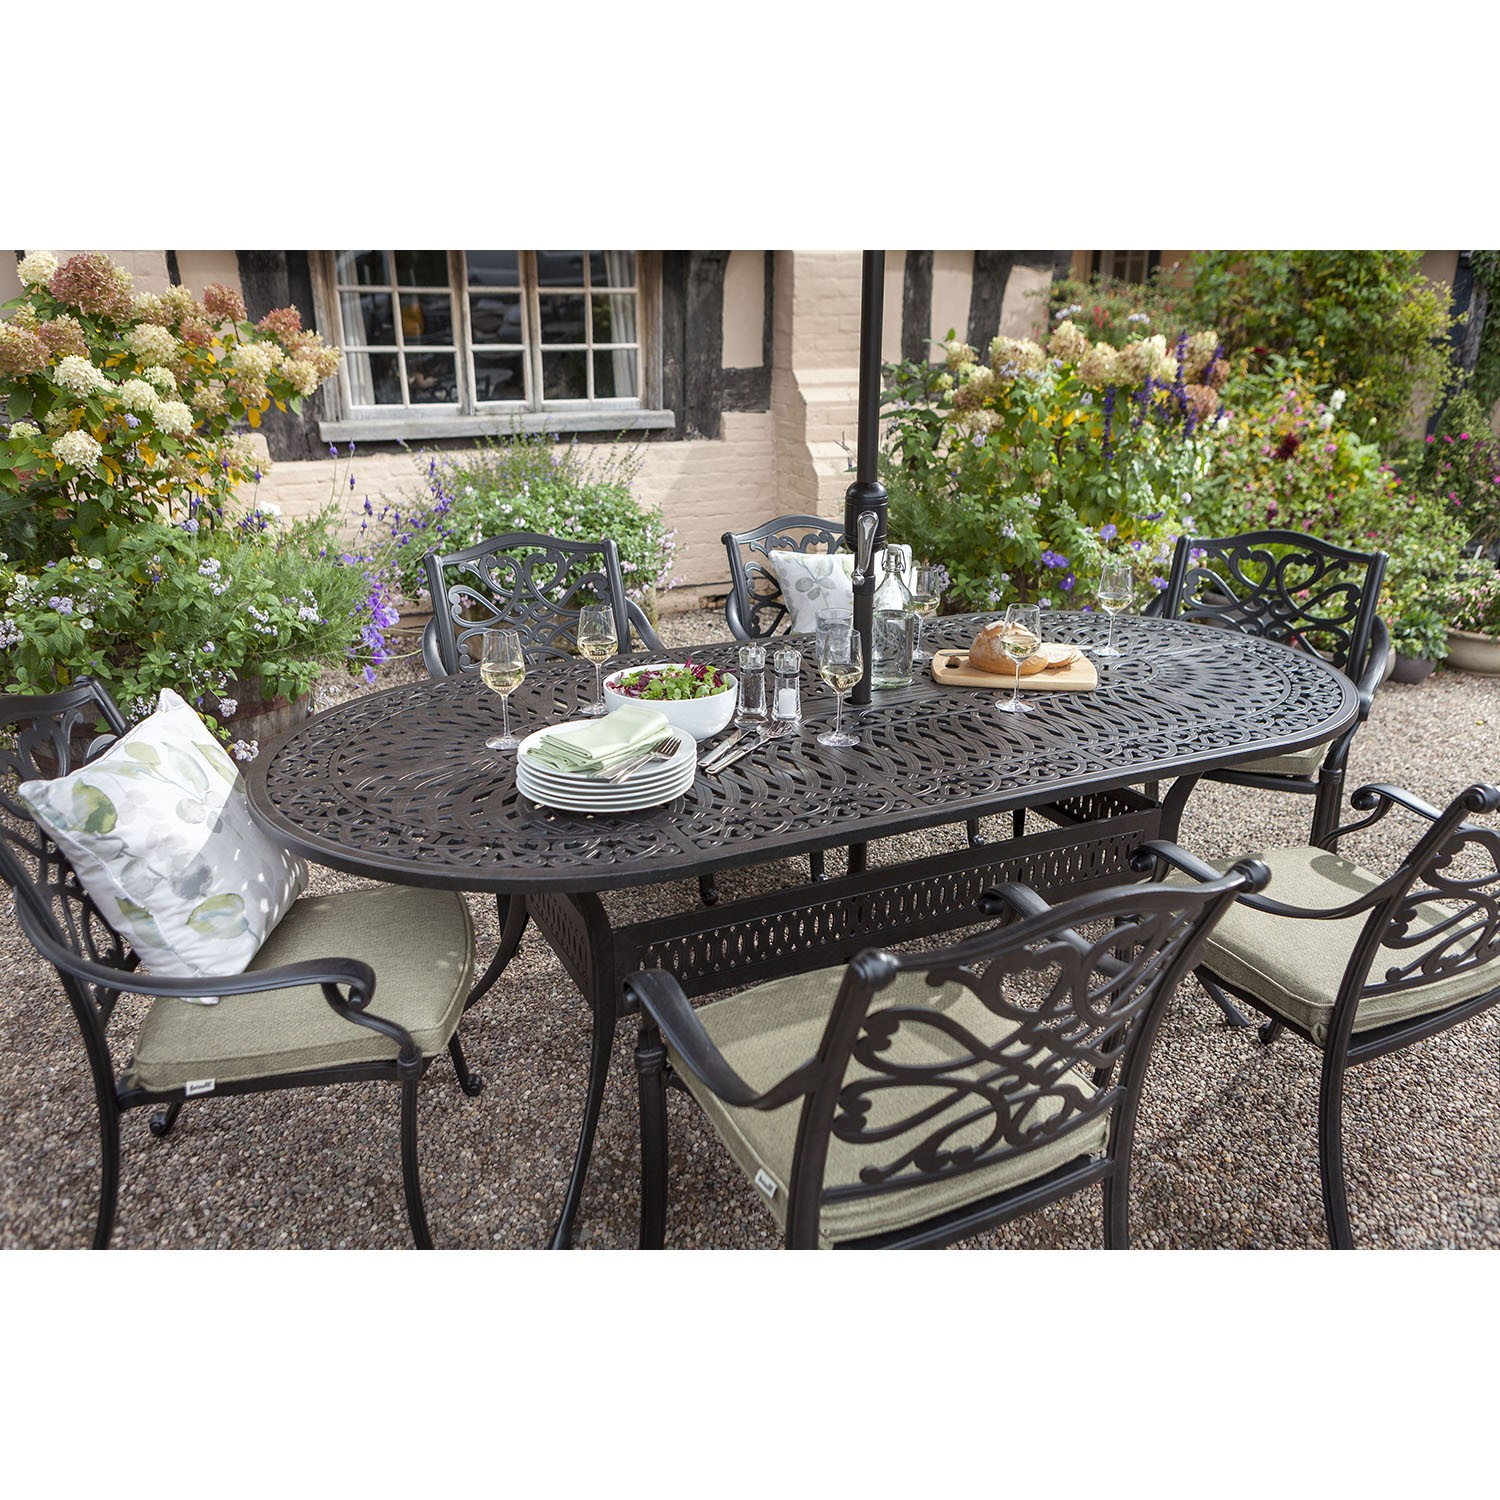 pinterest furniture oval pin table inch patio ideas round